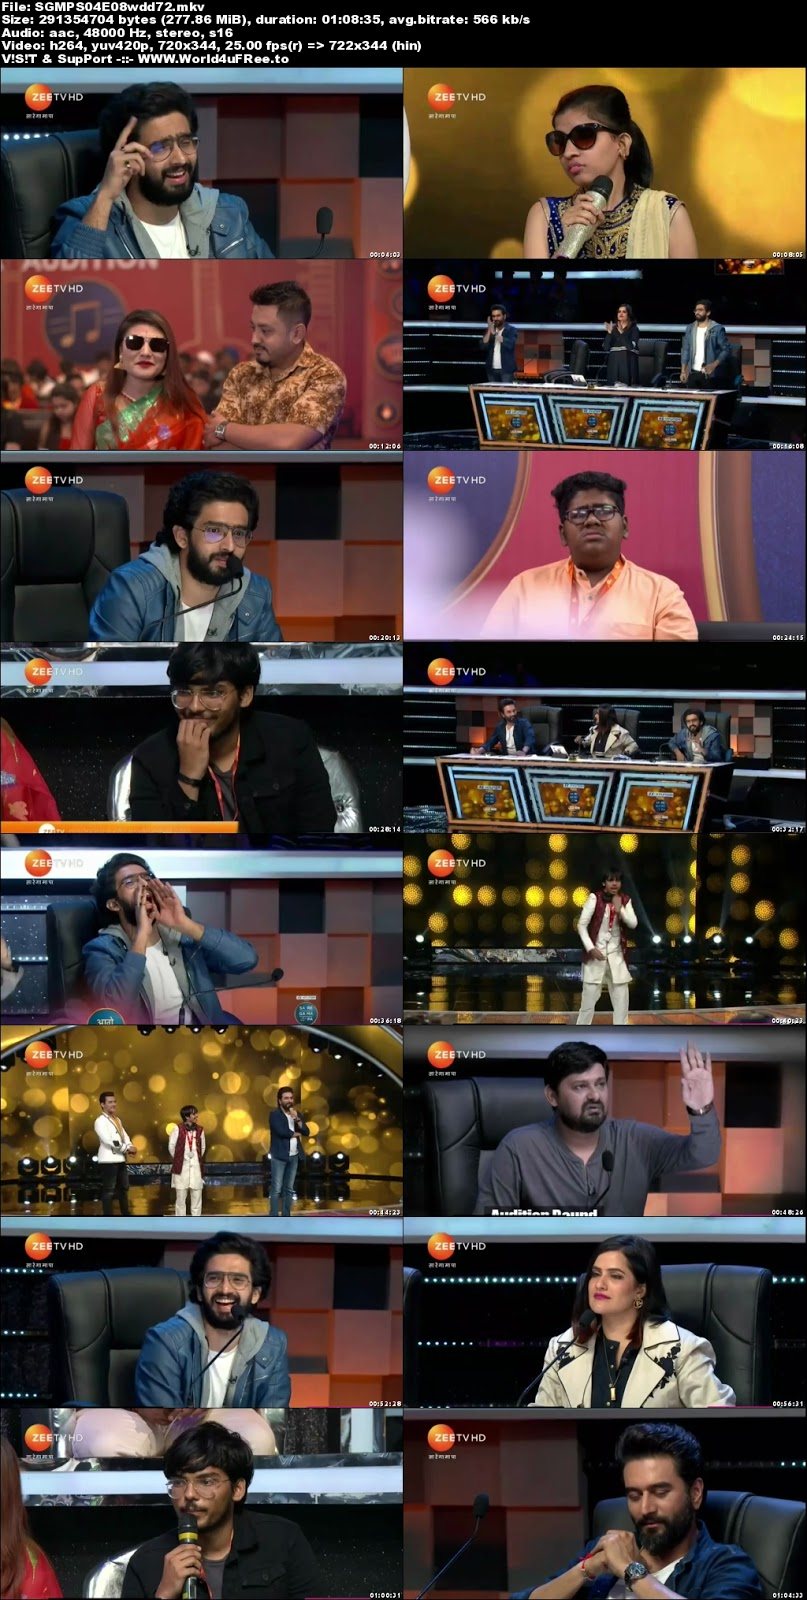 Sa Re Ga Ma Pa 2018 S04 Episode 08 720p HDTV 300Mb x264 world4ufree.fun tv show Sa Re Ga Ma Pa 2018 S04 2018 hindi Zee tv show compressed small size free download or watch online at world4ufree.fun